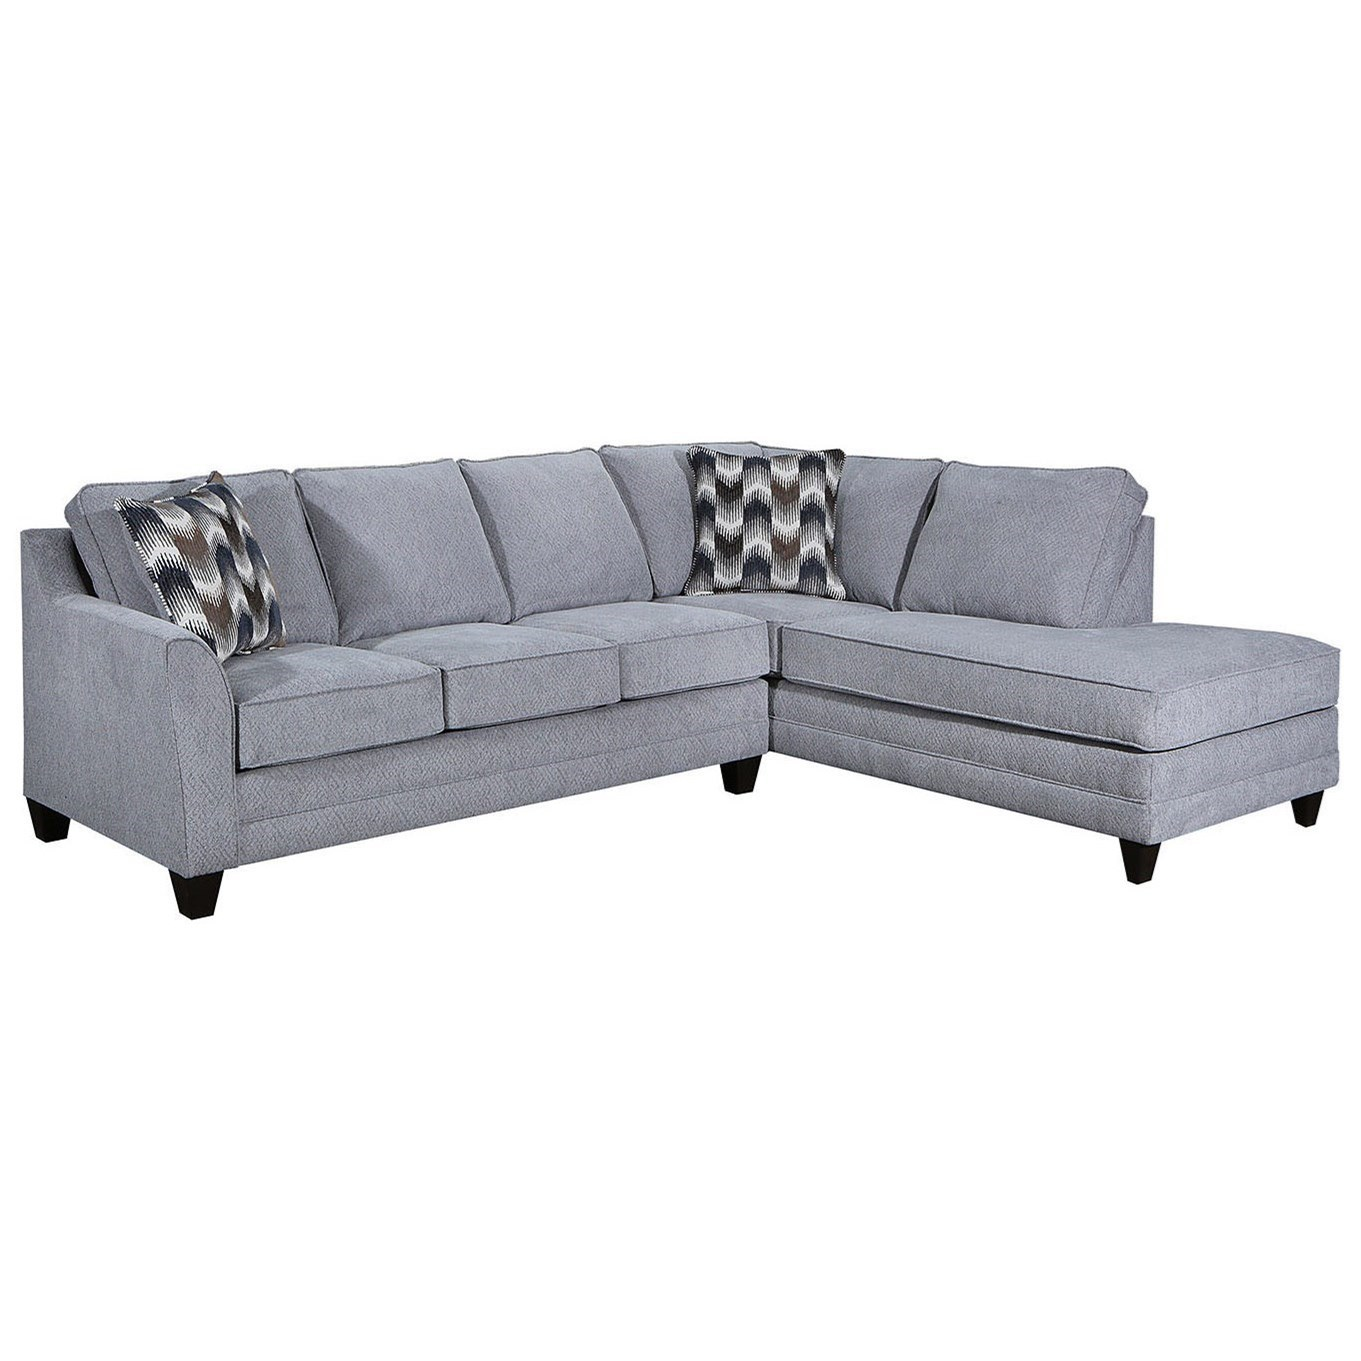 2013 2-Piece Sectional by Lane at Esprit Decor Home Furnishings